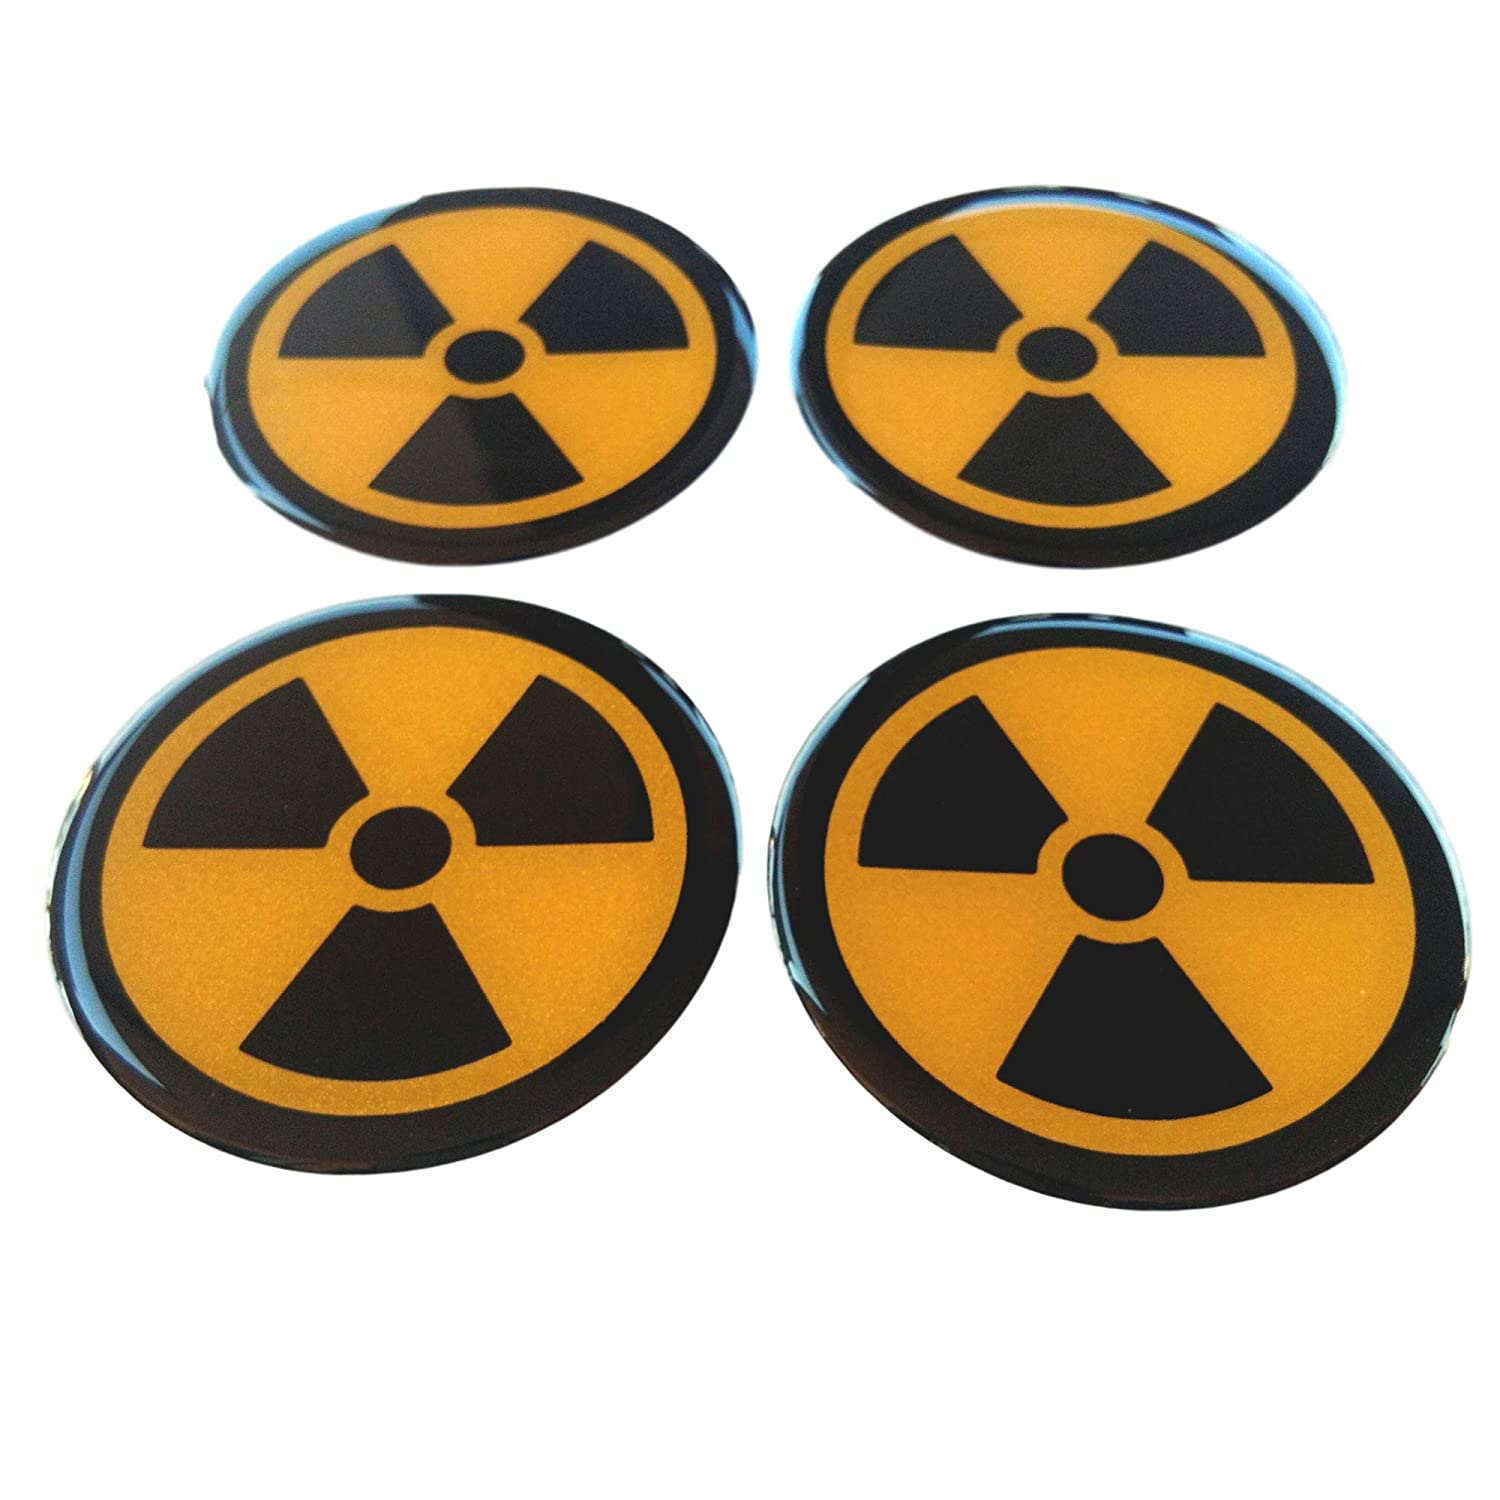 Nuclear 50 mm Radioactive Radiation Symbol Warning Sign Domed 3D Yellow Reflective on Black Wheel 4 Pcs Cap Hub Center Decals Sticker Badge Emblem for Racing Car Truck Safety Night High Visibility